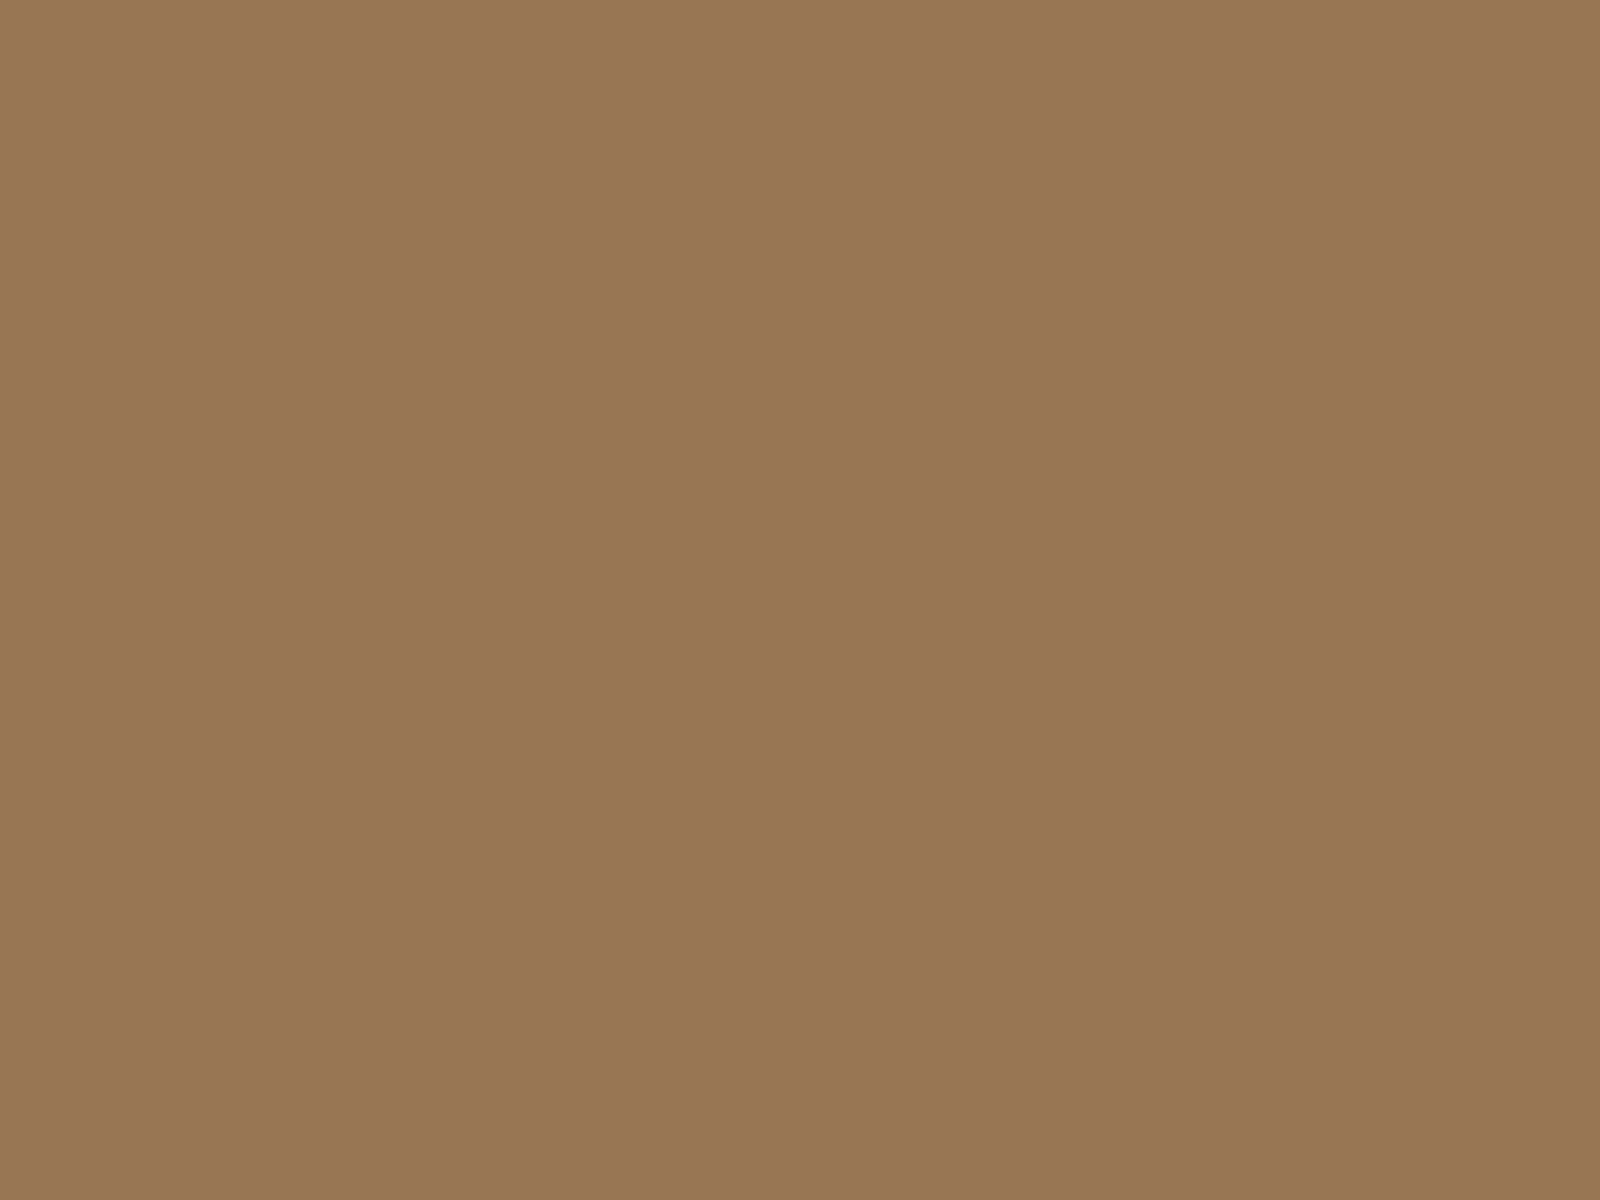 1600x1200 Pale Brown Solid Color Background